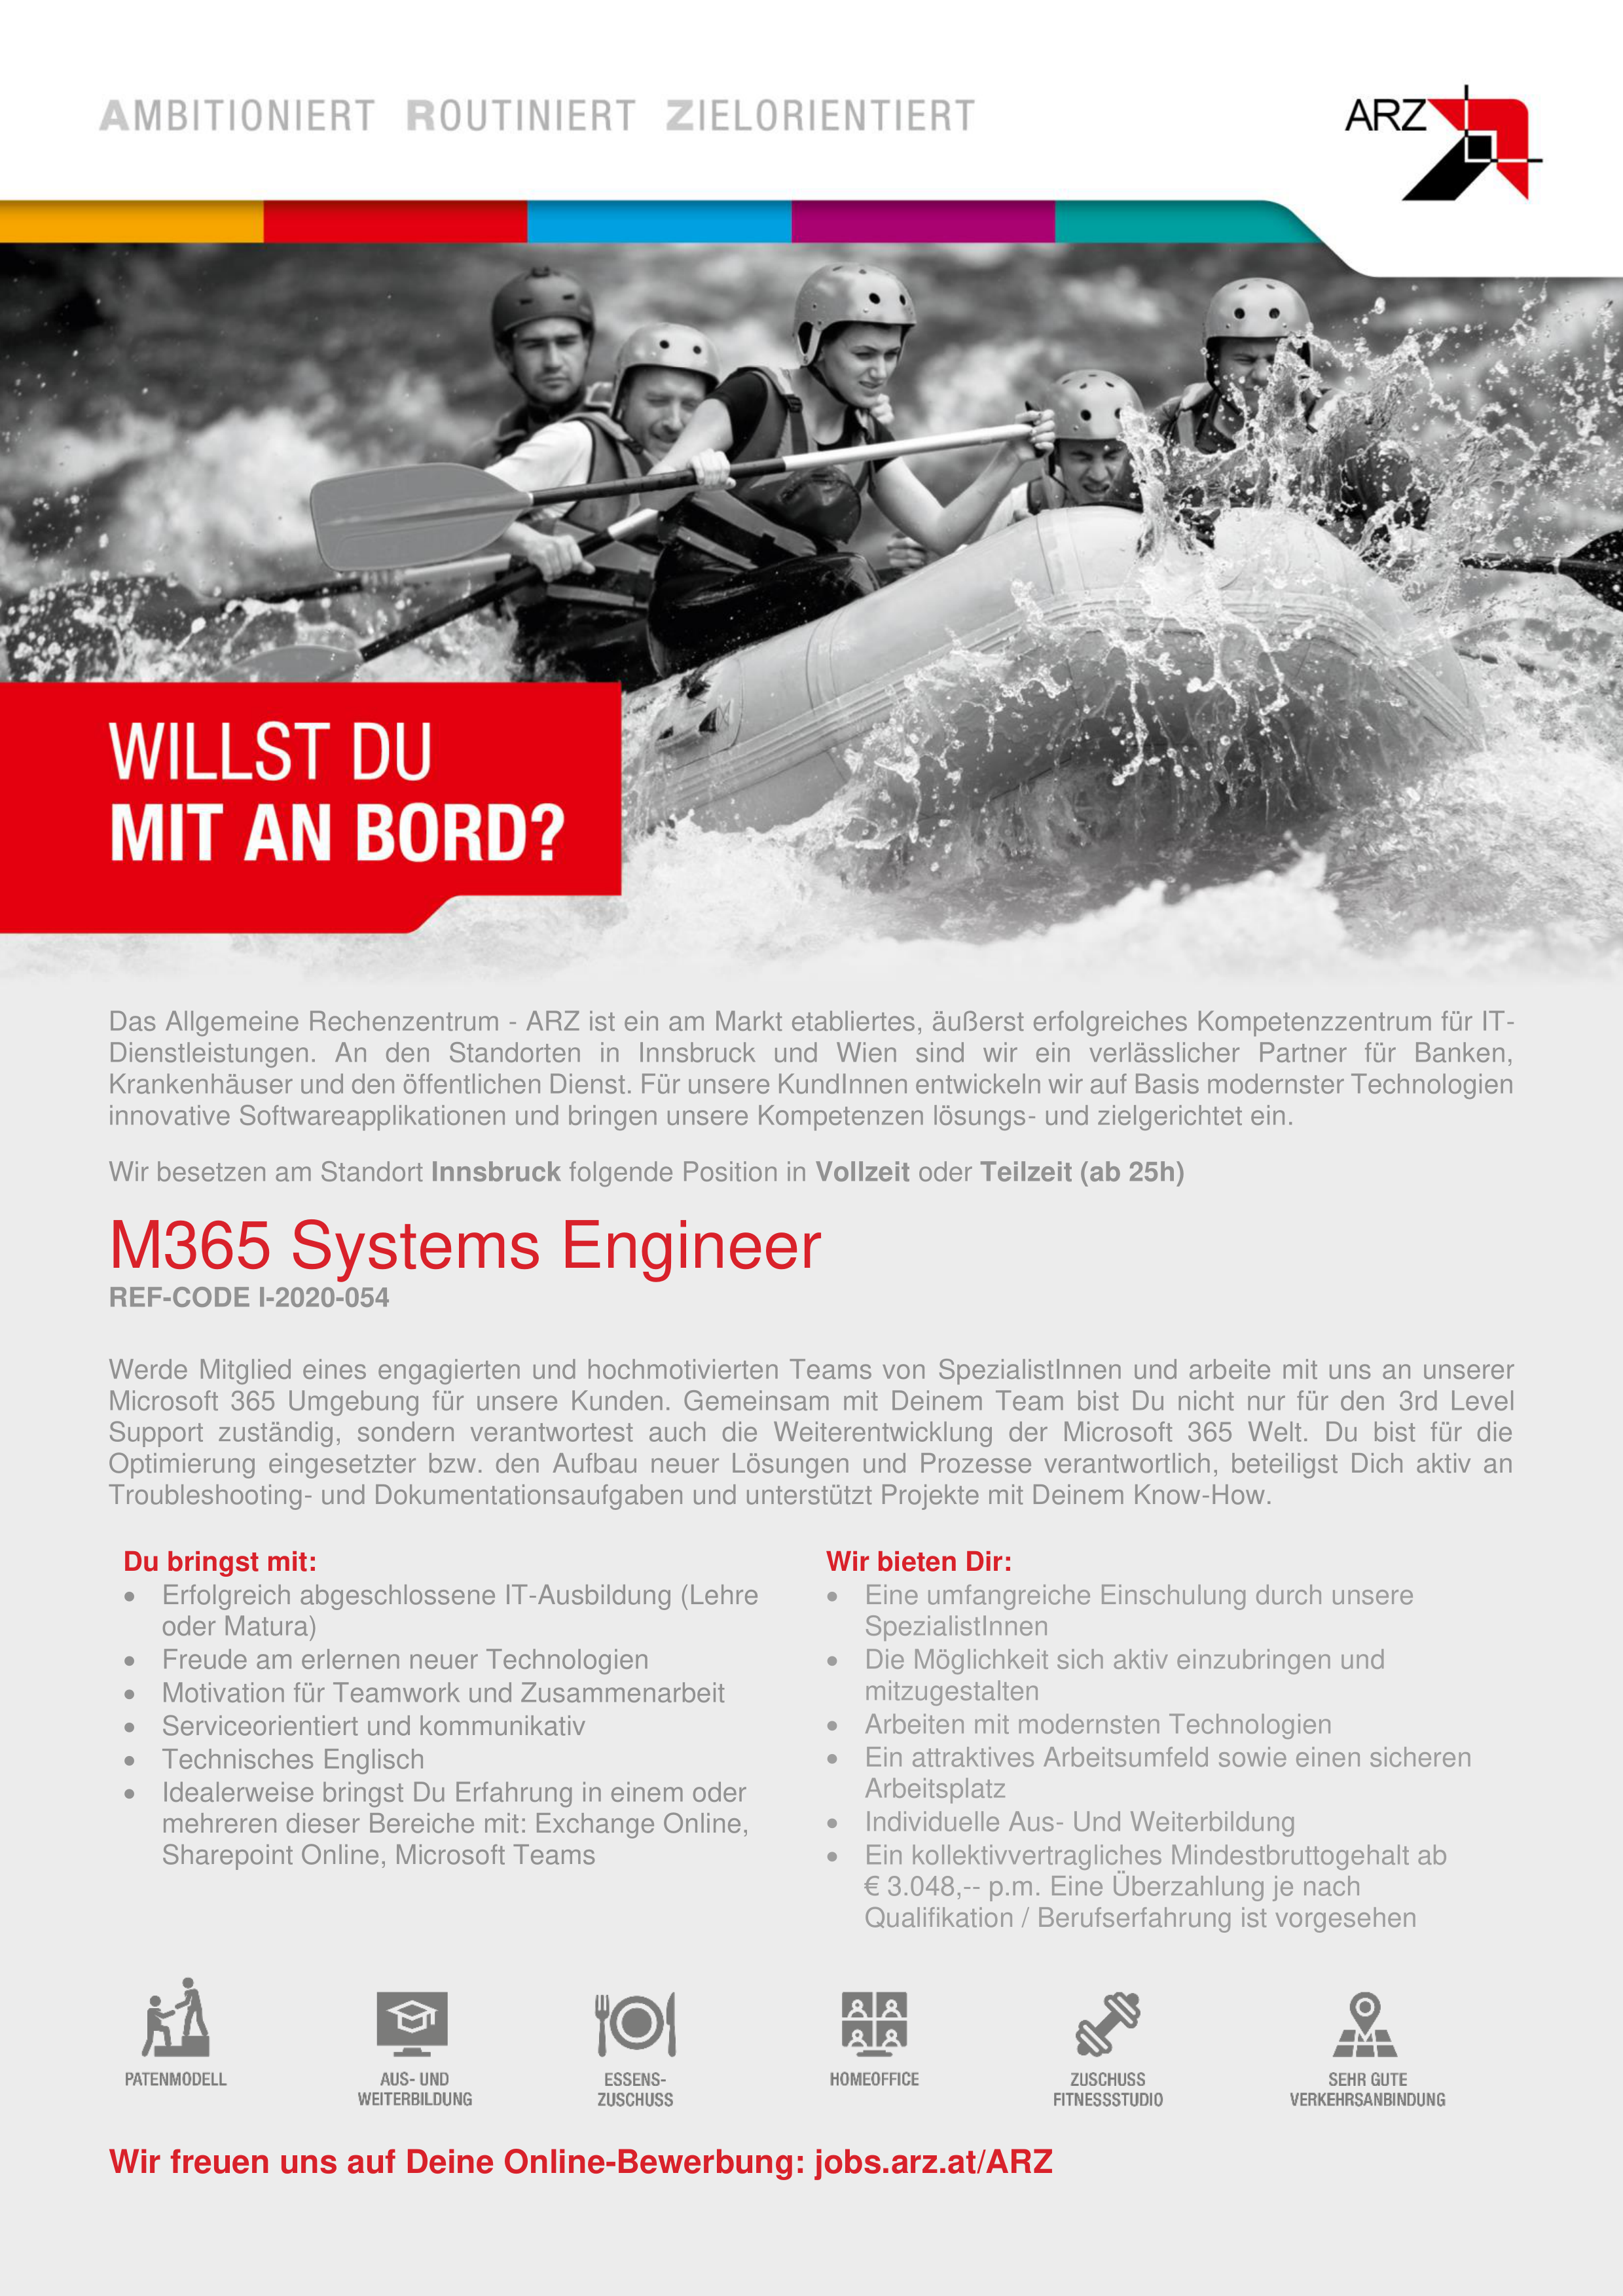 M365 Systems Engineer REF-CODE-I-2020-054